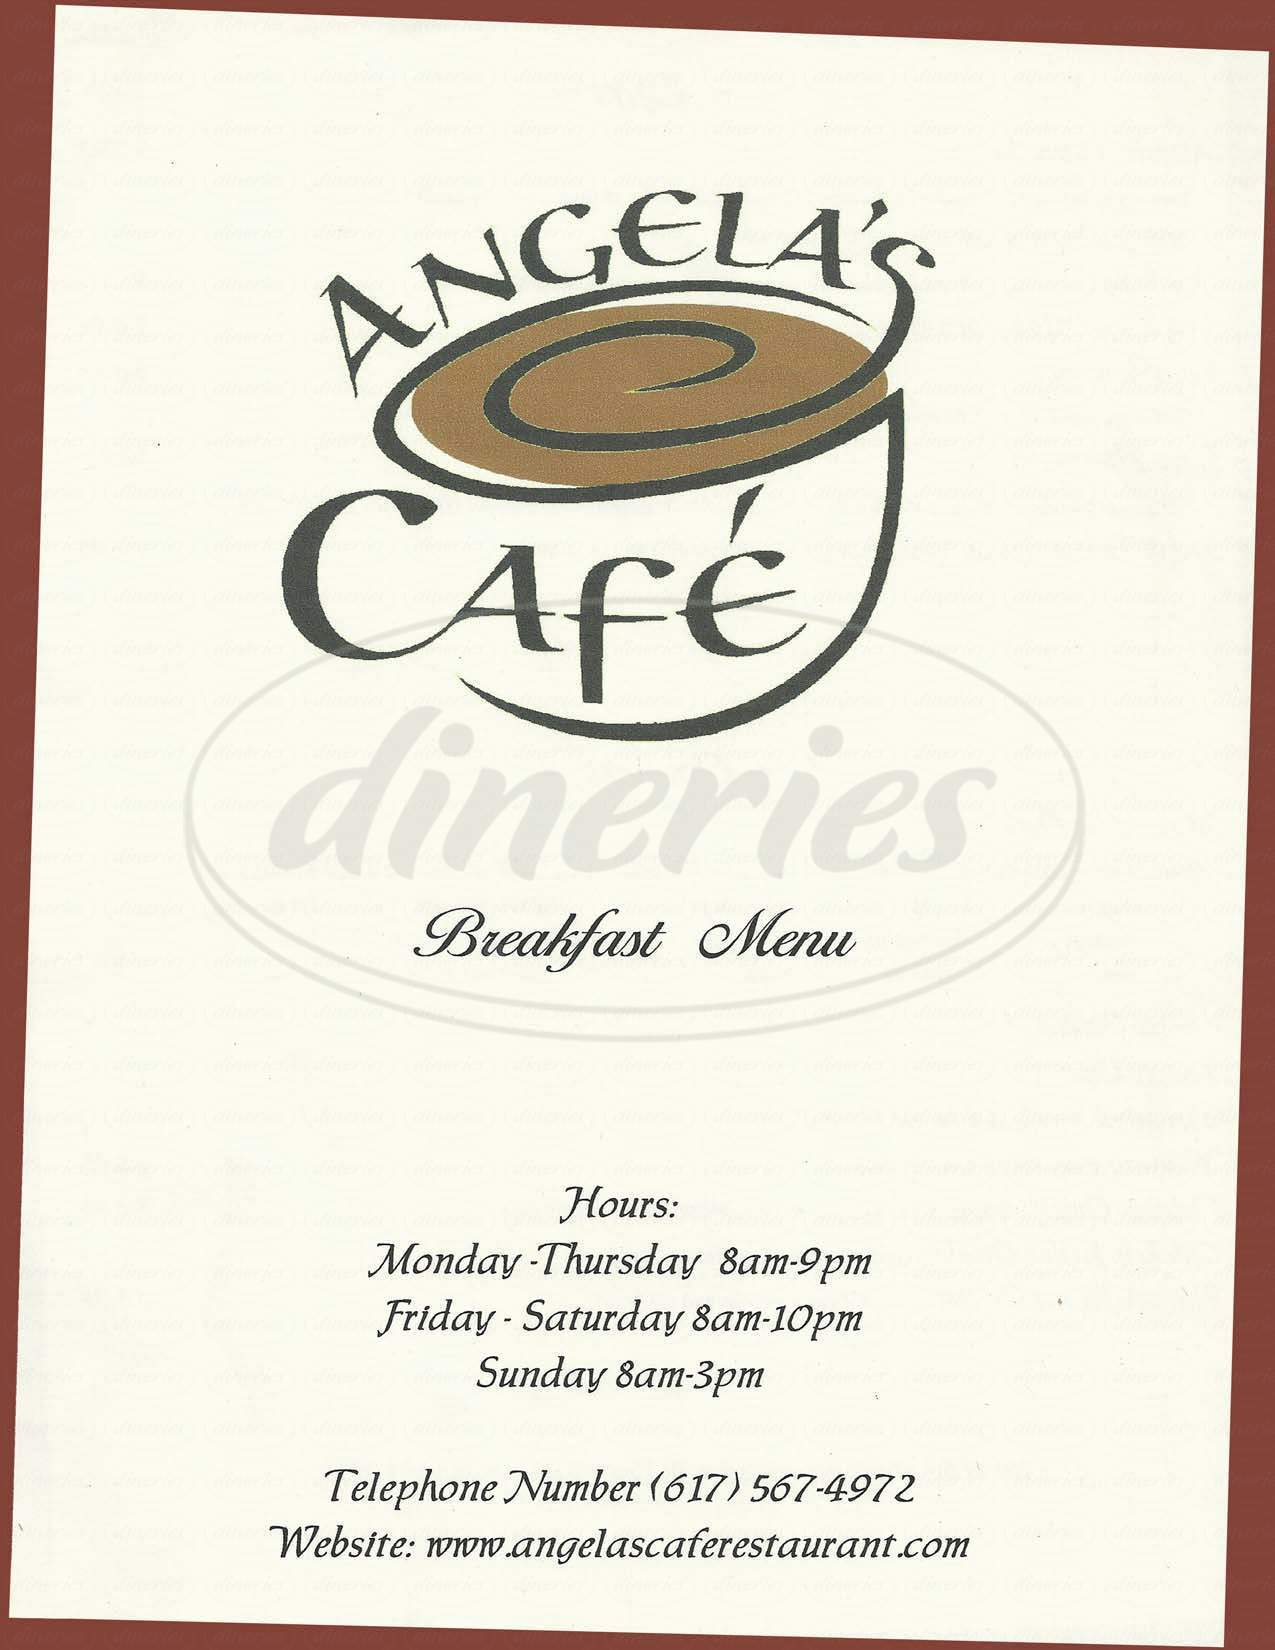 menu for Angela's Cafe